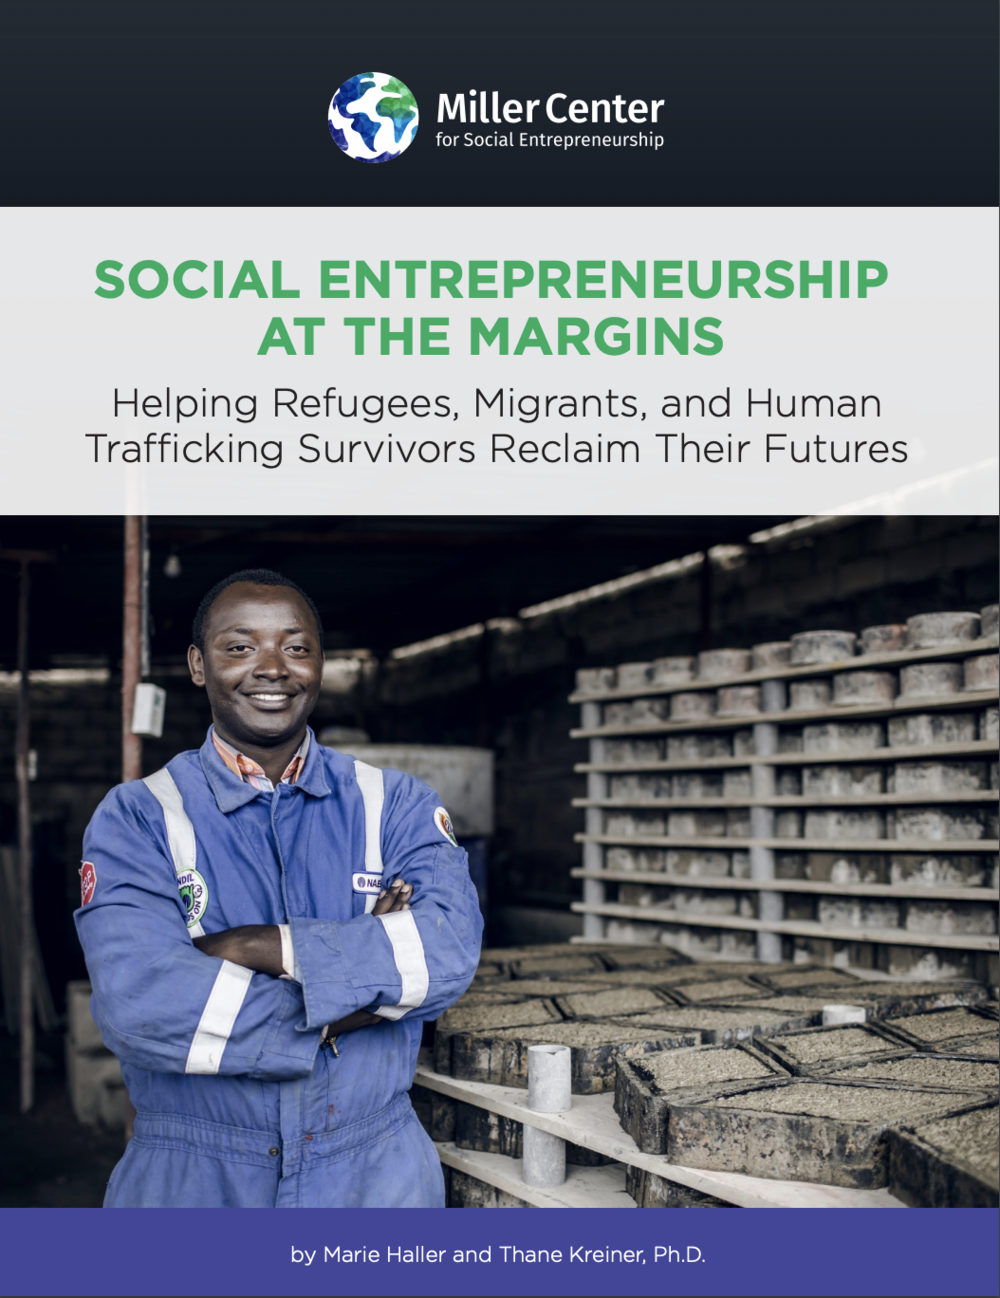 Social Entrepreneurship at the Margins: Helping Refugees, Migrants, and Human Trafficking Survivors Reclaim Their Futures